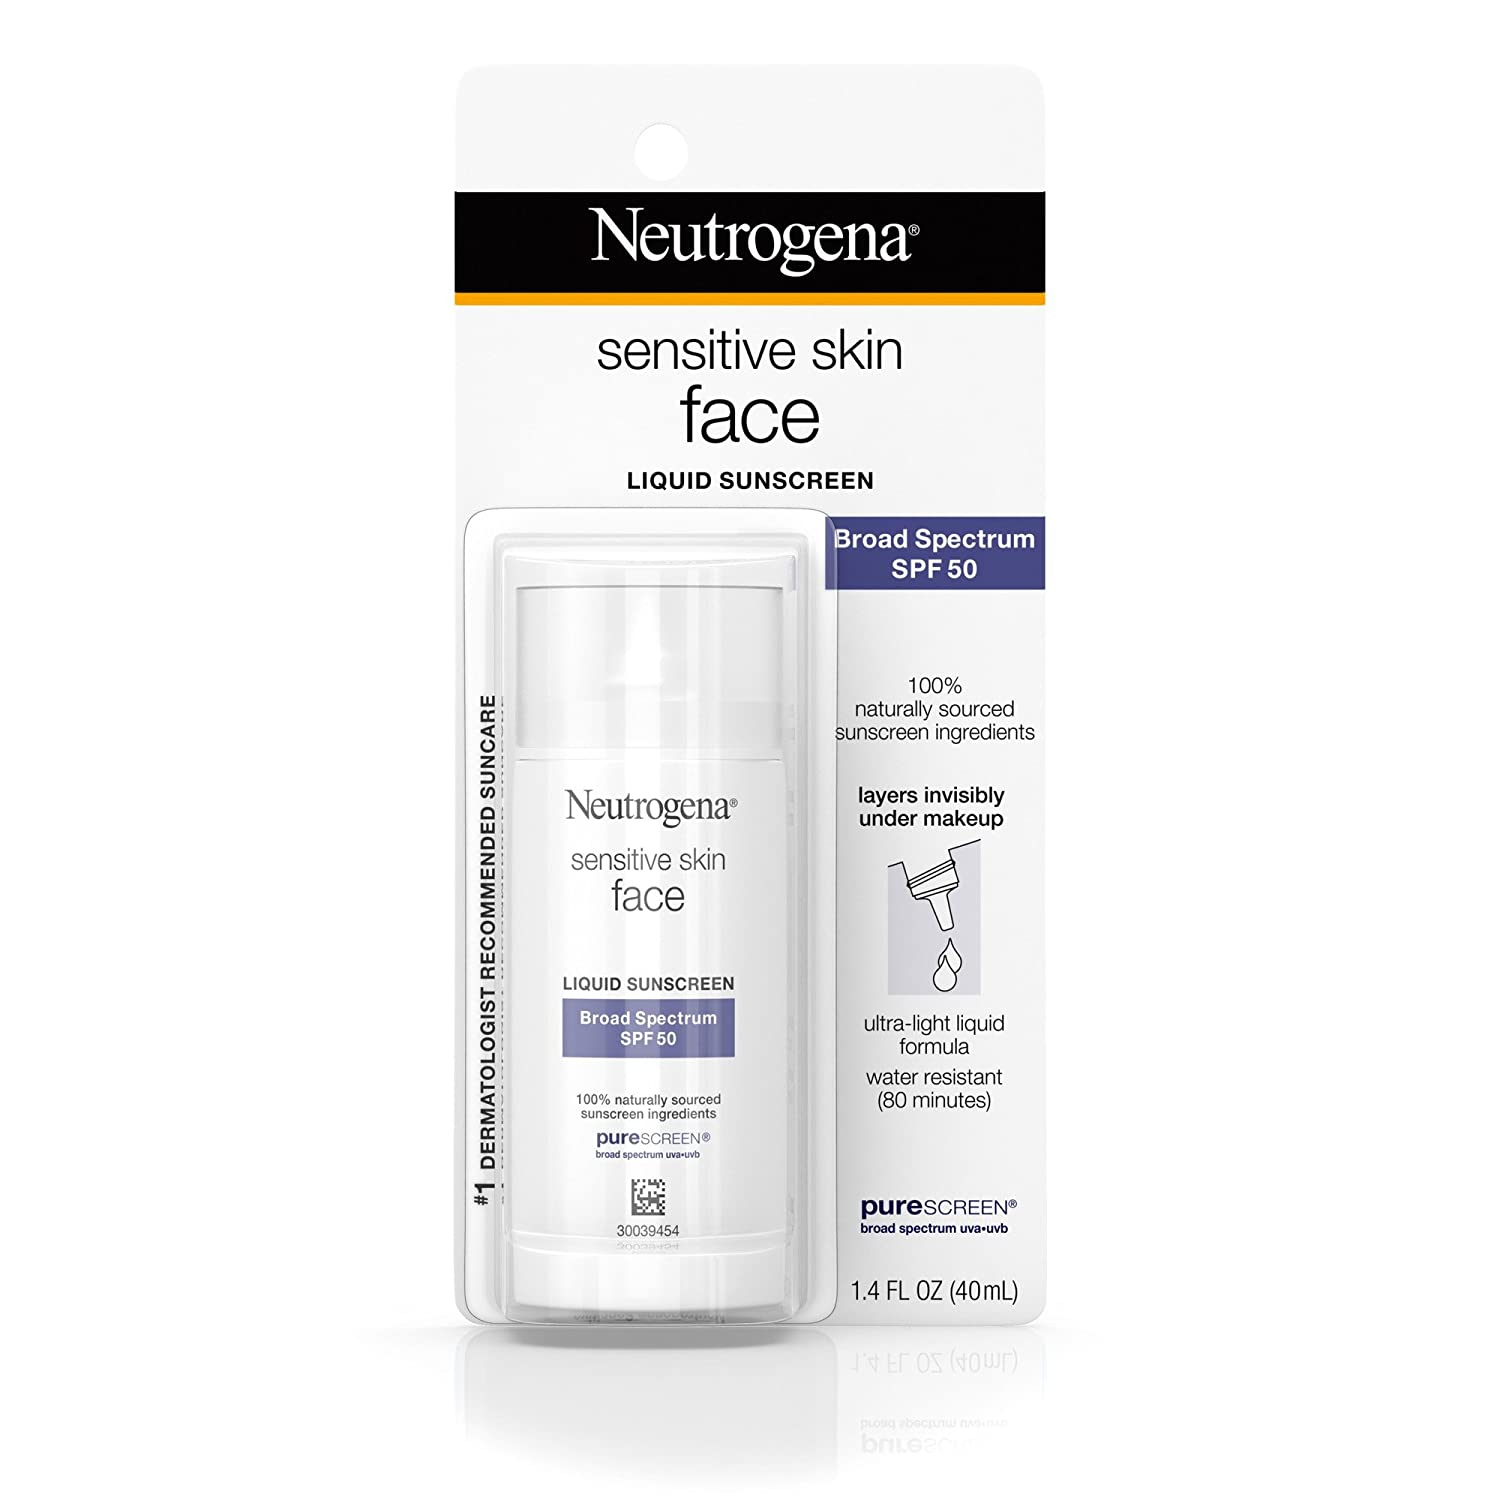 Neutrogena Face Sunscreen for Sensitive Skin from Naturally Sourced Ingredients with Zinc Oxide, Broad Spectrum SPF 50, 1.4 fl. Oz Johnson & Johnson SLC 08680086041